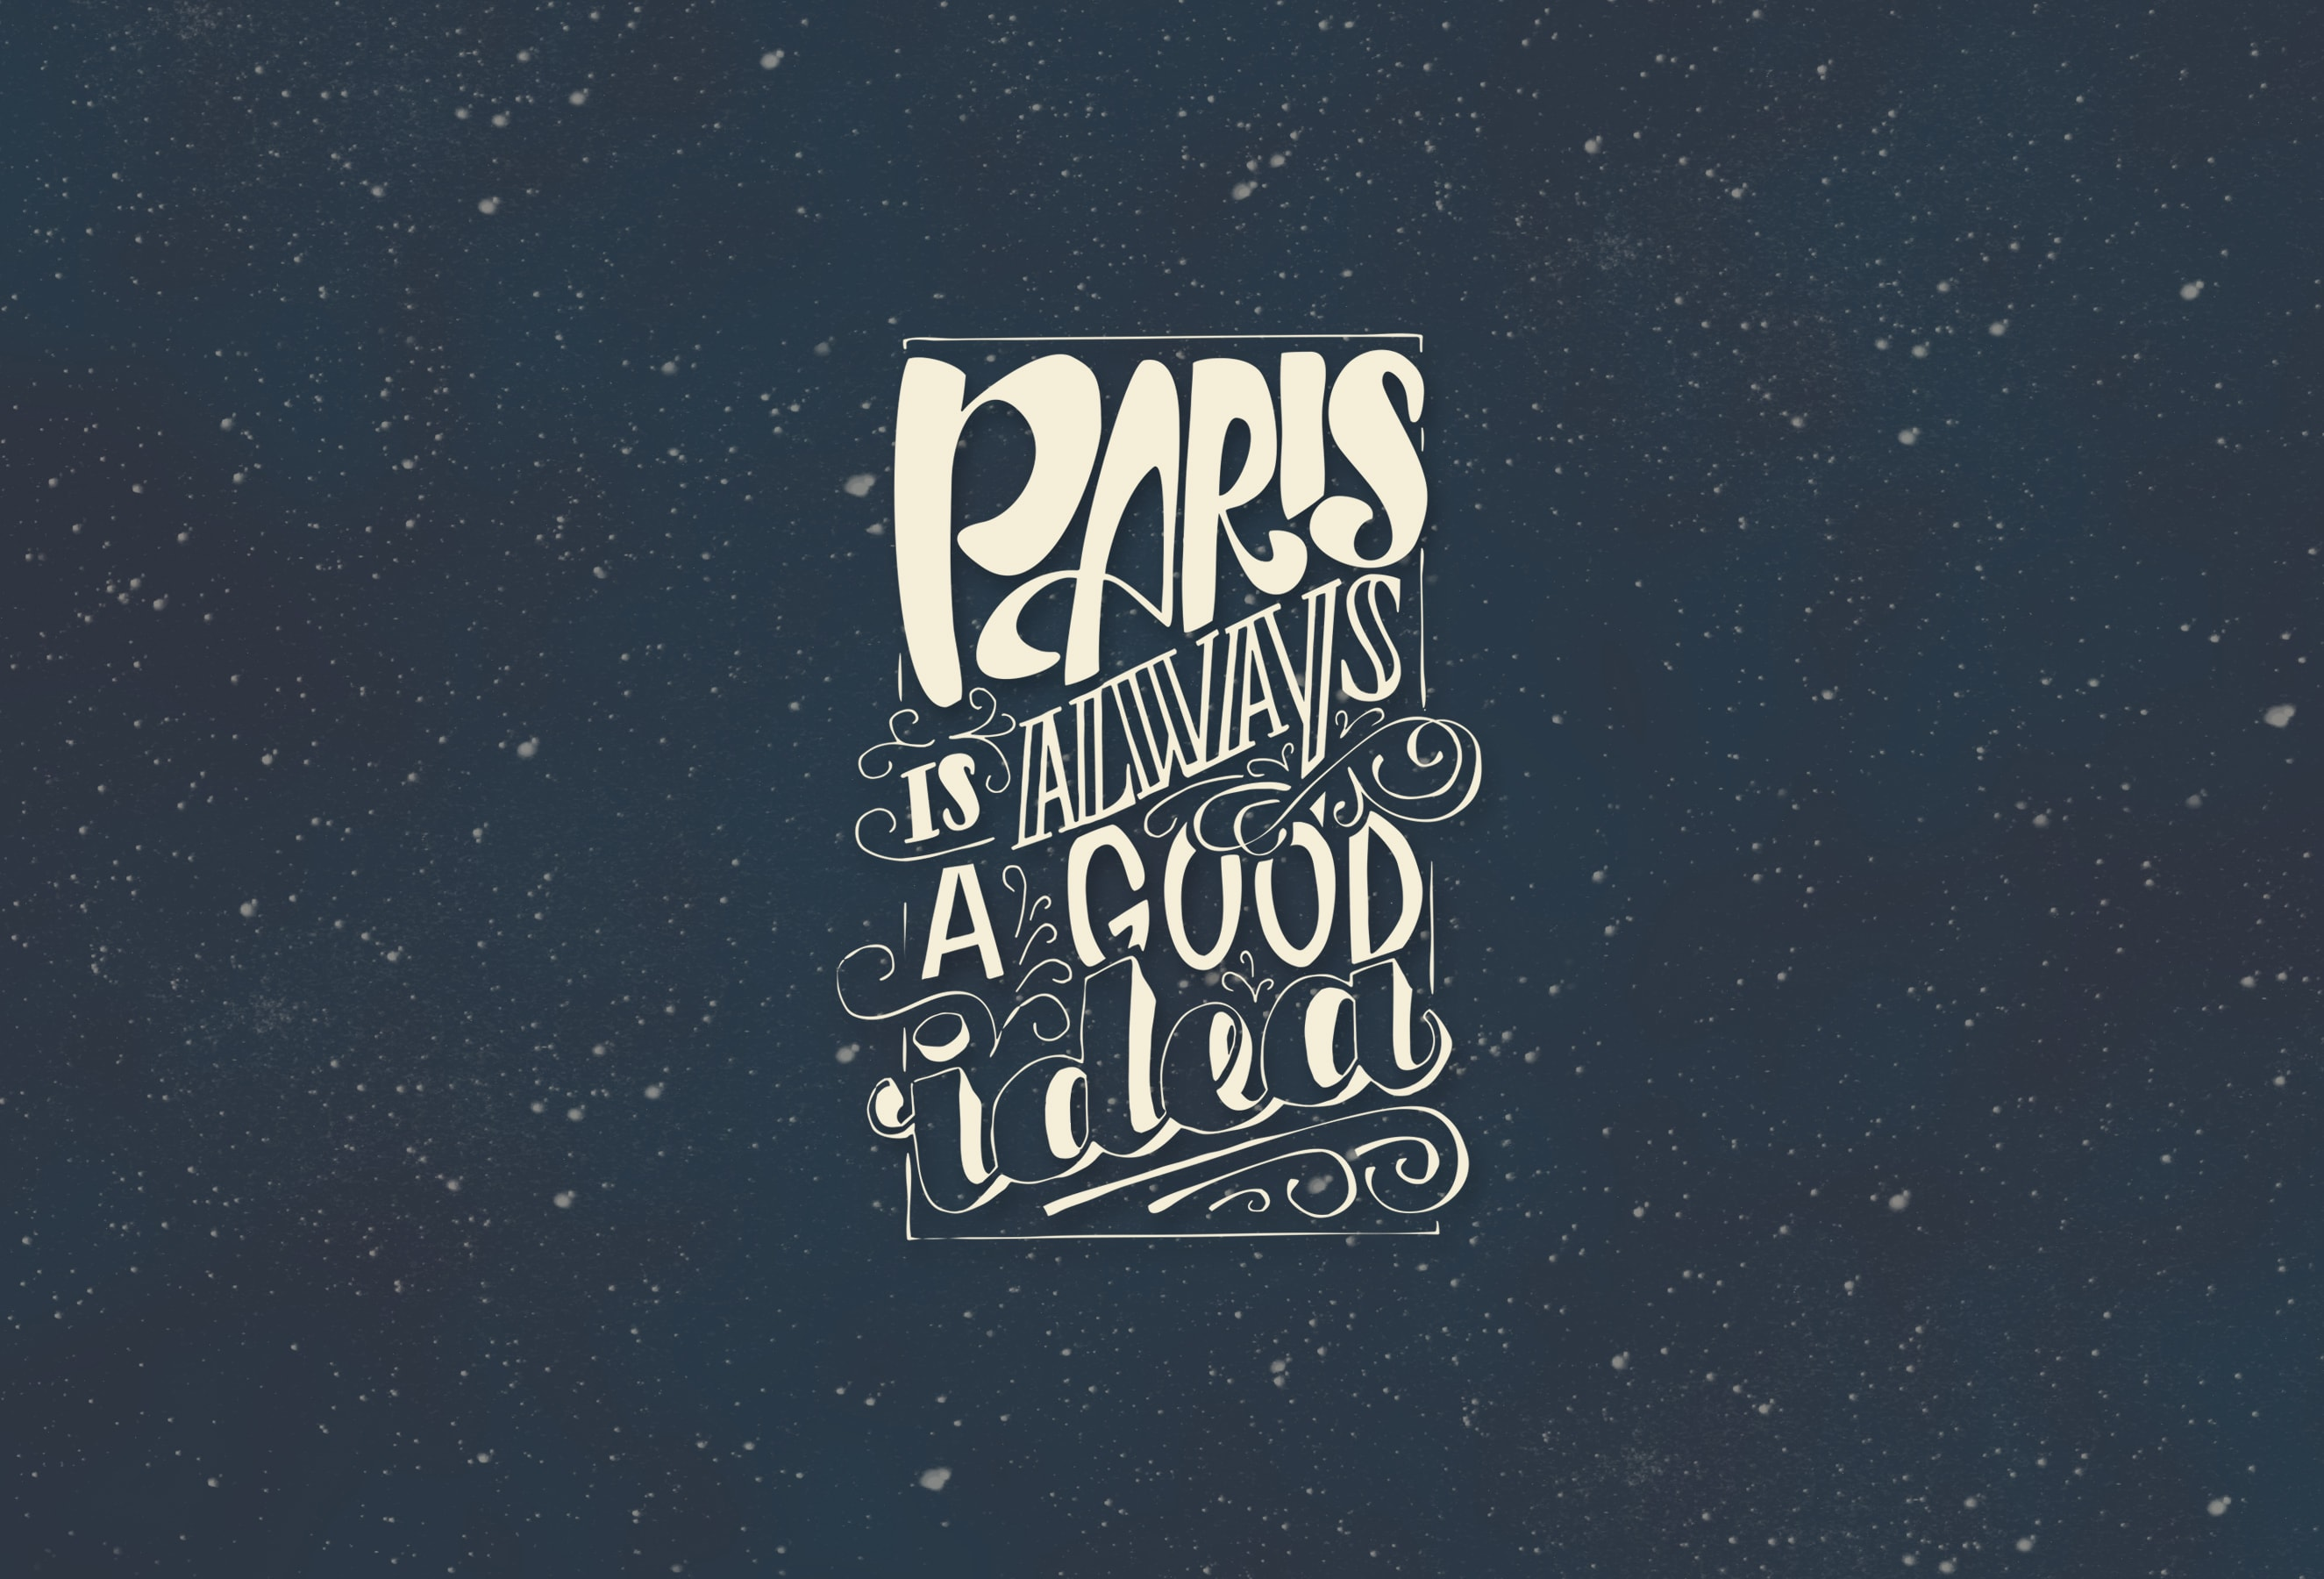 cute girly paris wallpapers